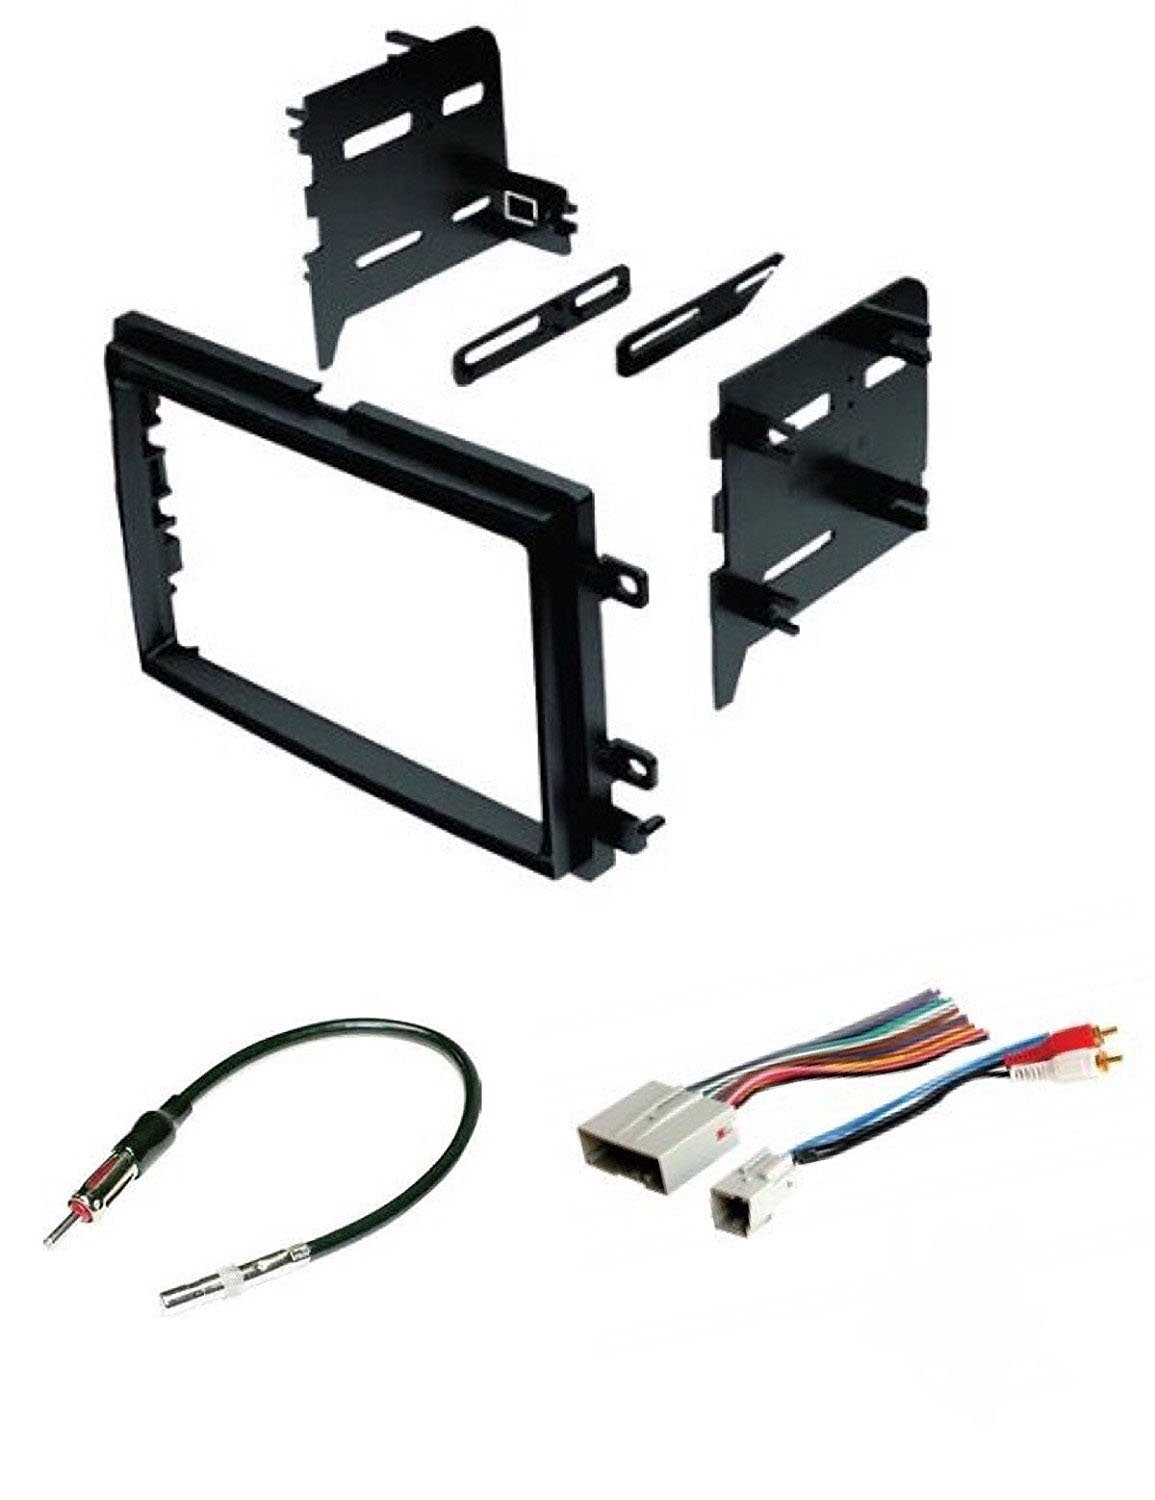 Car Stereo Radio Install Dash Kit Wire Harness And Ford Expedition Factory Wiring Antenna Adapter To A Double Din For Lincoln Mercury Vehicles